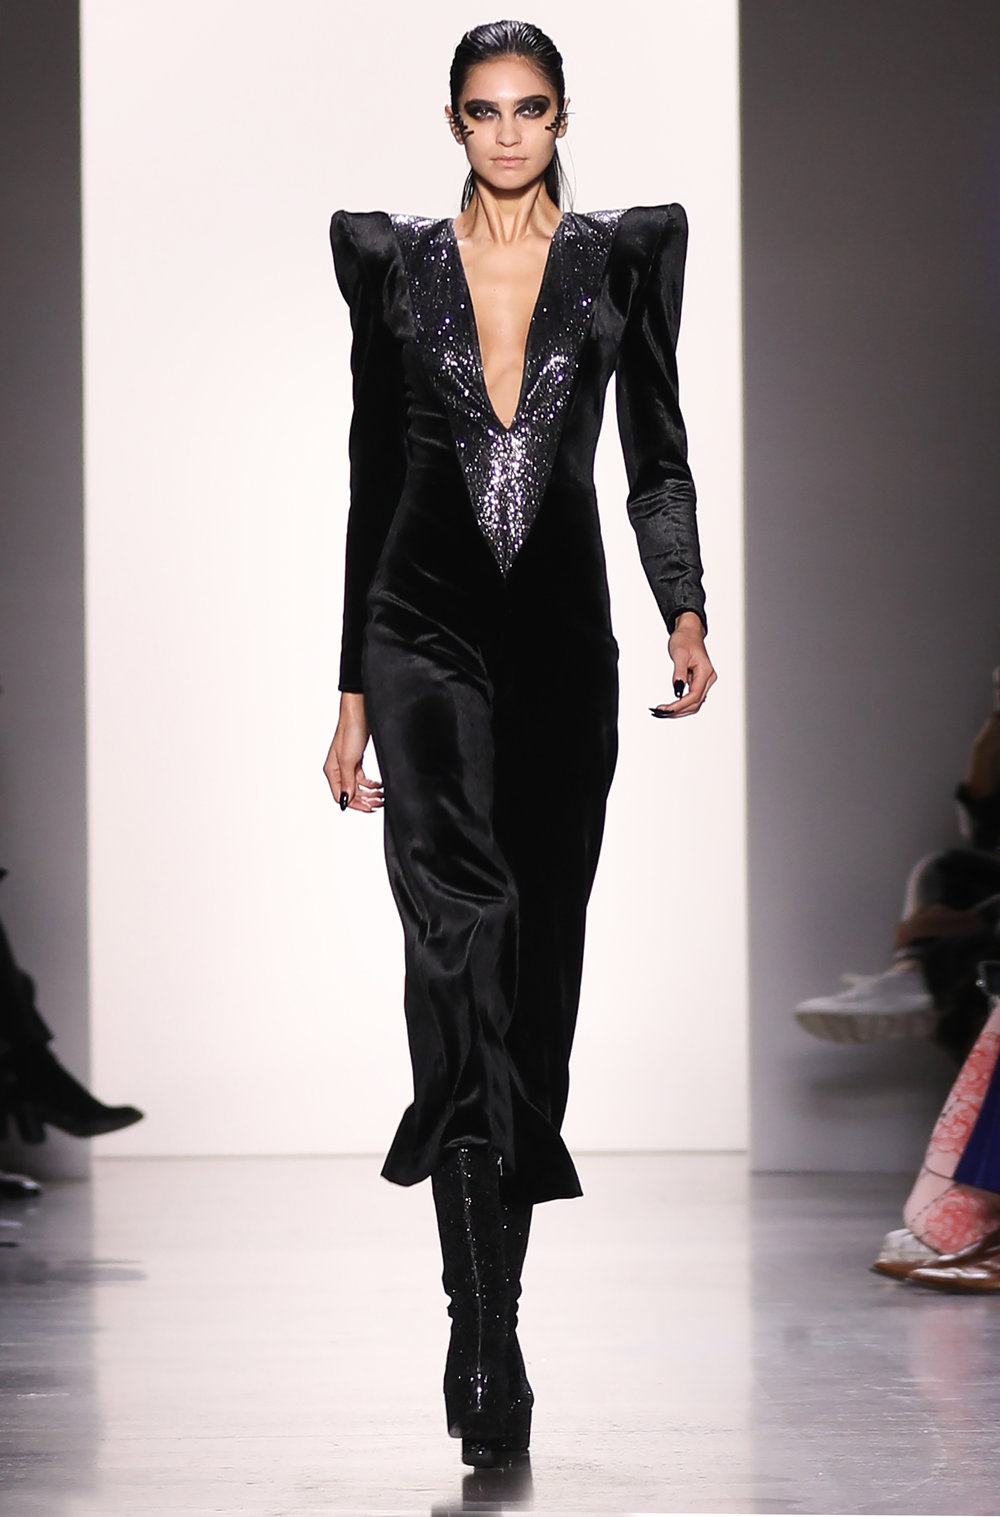 Hakan-Akkaya-NYFW-Fall-2019-35-300dpi-Photo-Credit-Elvia-Gobbo.jpg